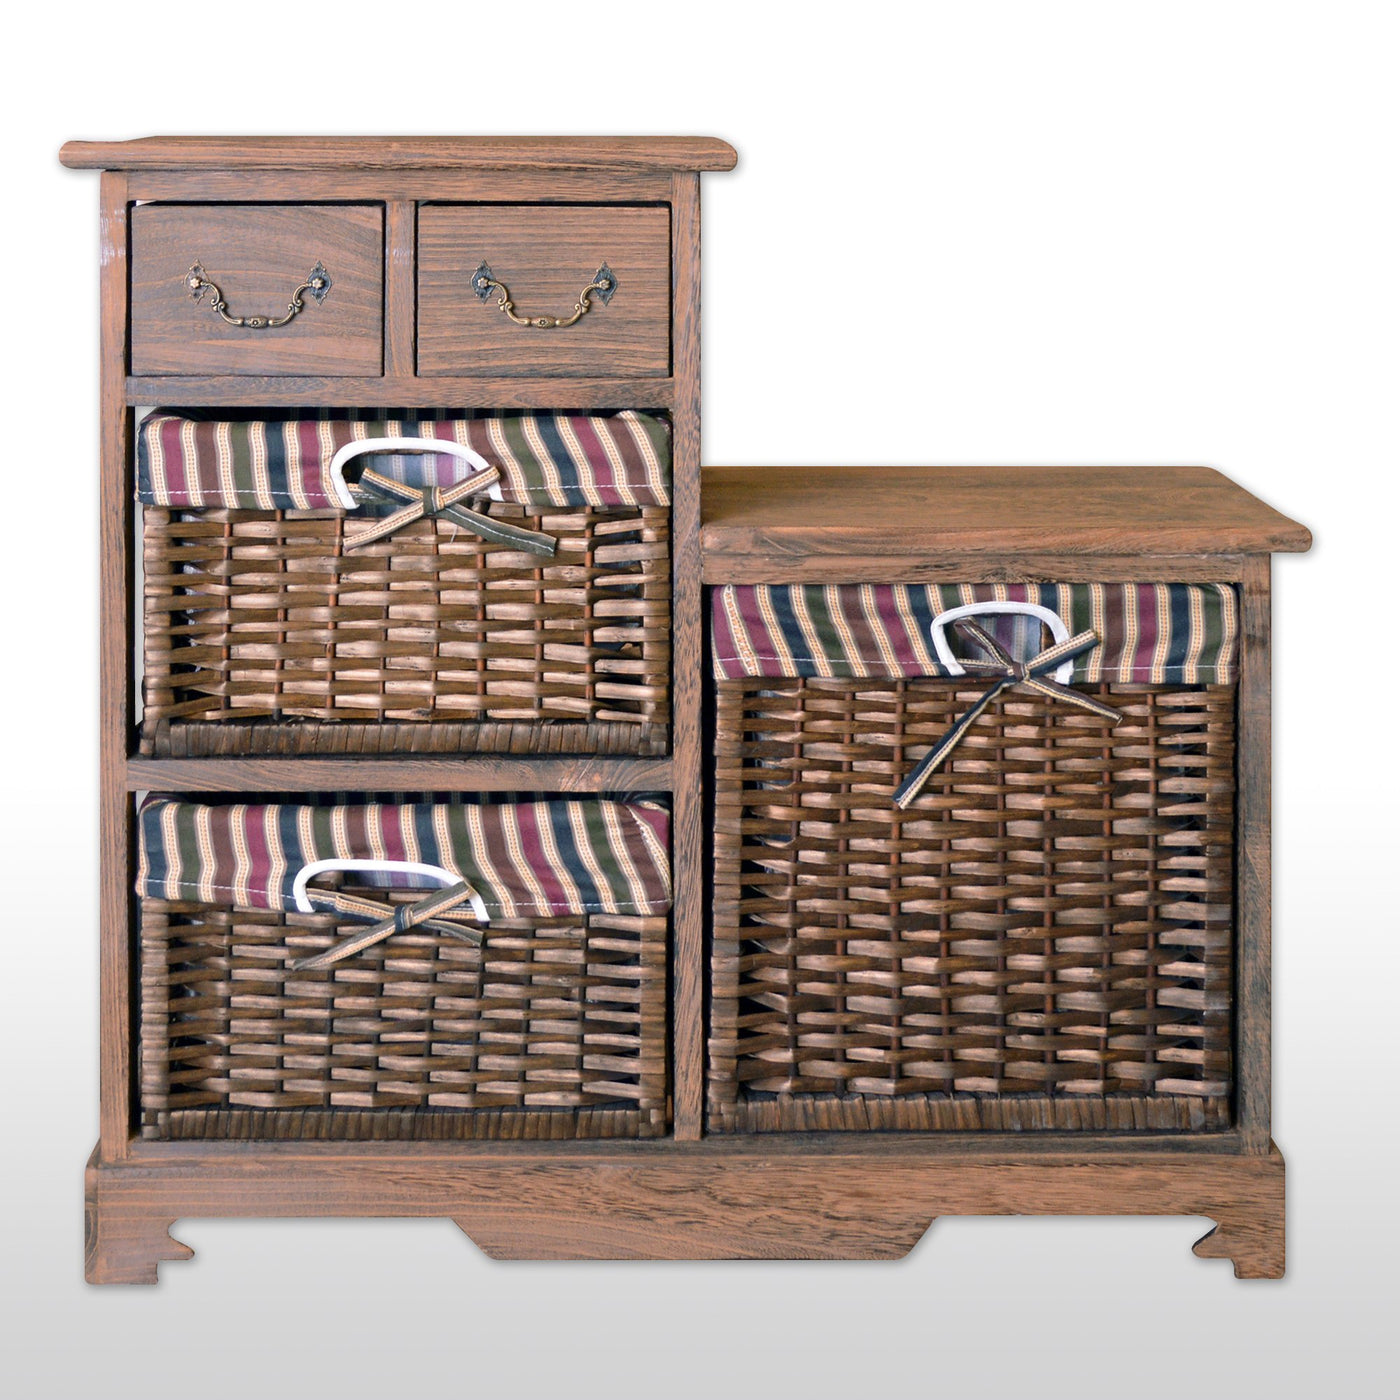 storage cabinet with 2 drawers 3 wicker baskets 28 tall in rh homenique net espresso wooden storage cabinet with wicker baskets wooden storage cabinet with wicker baskets